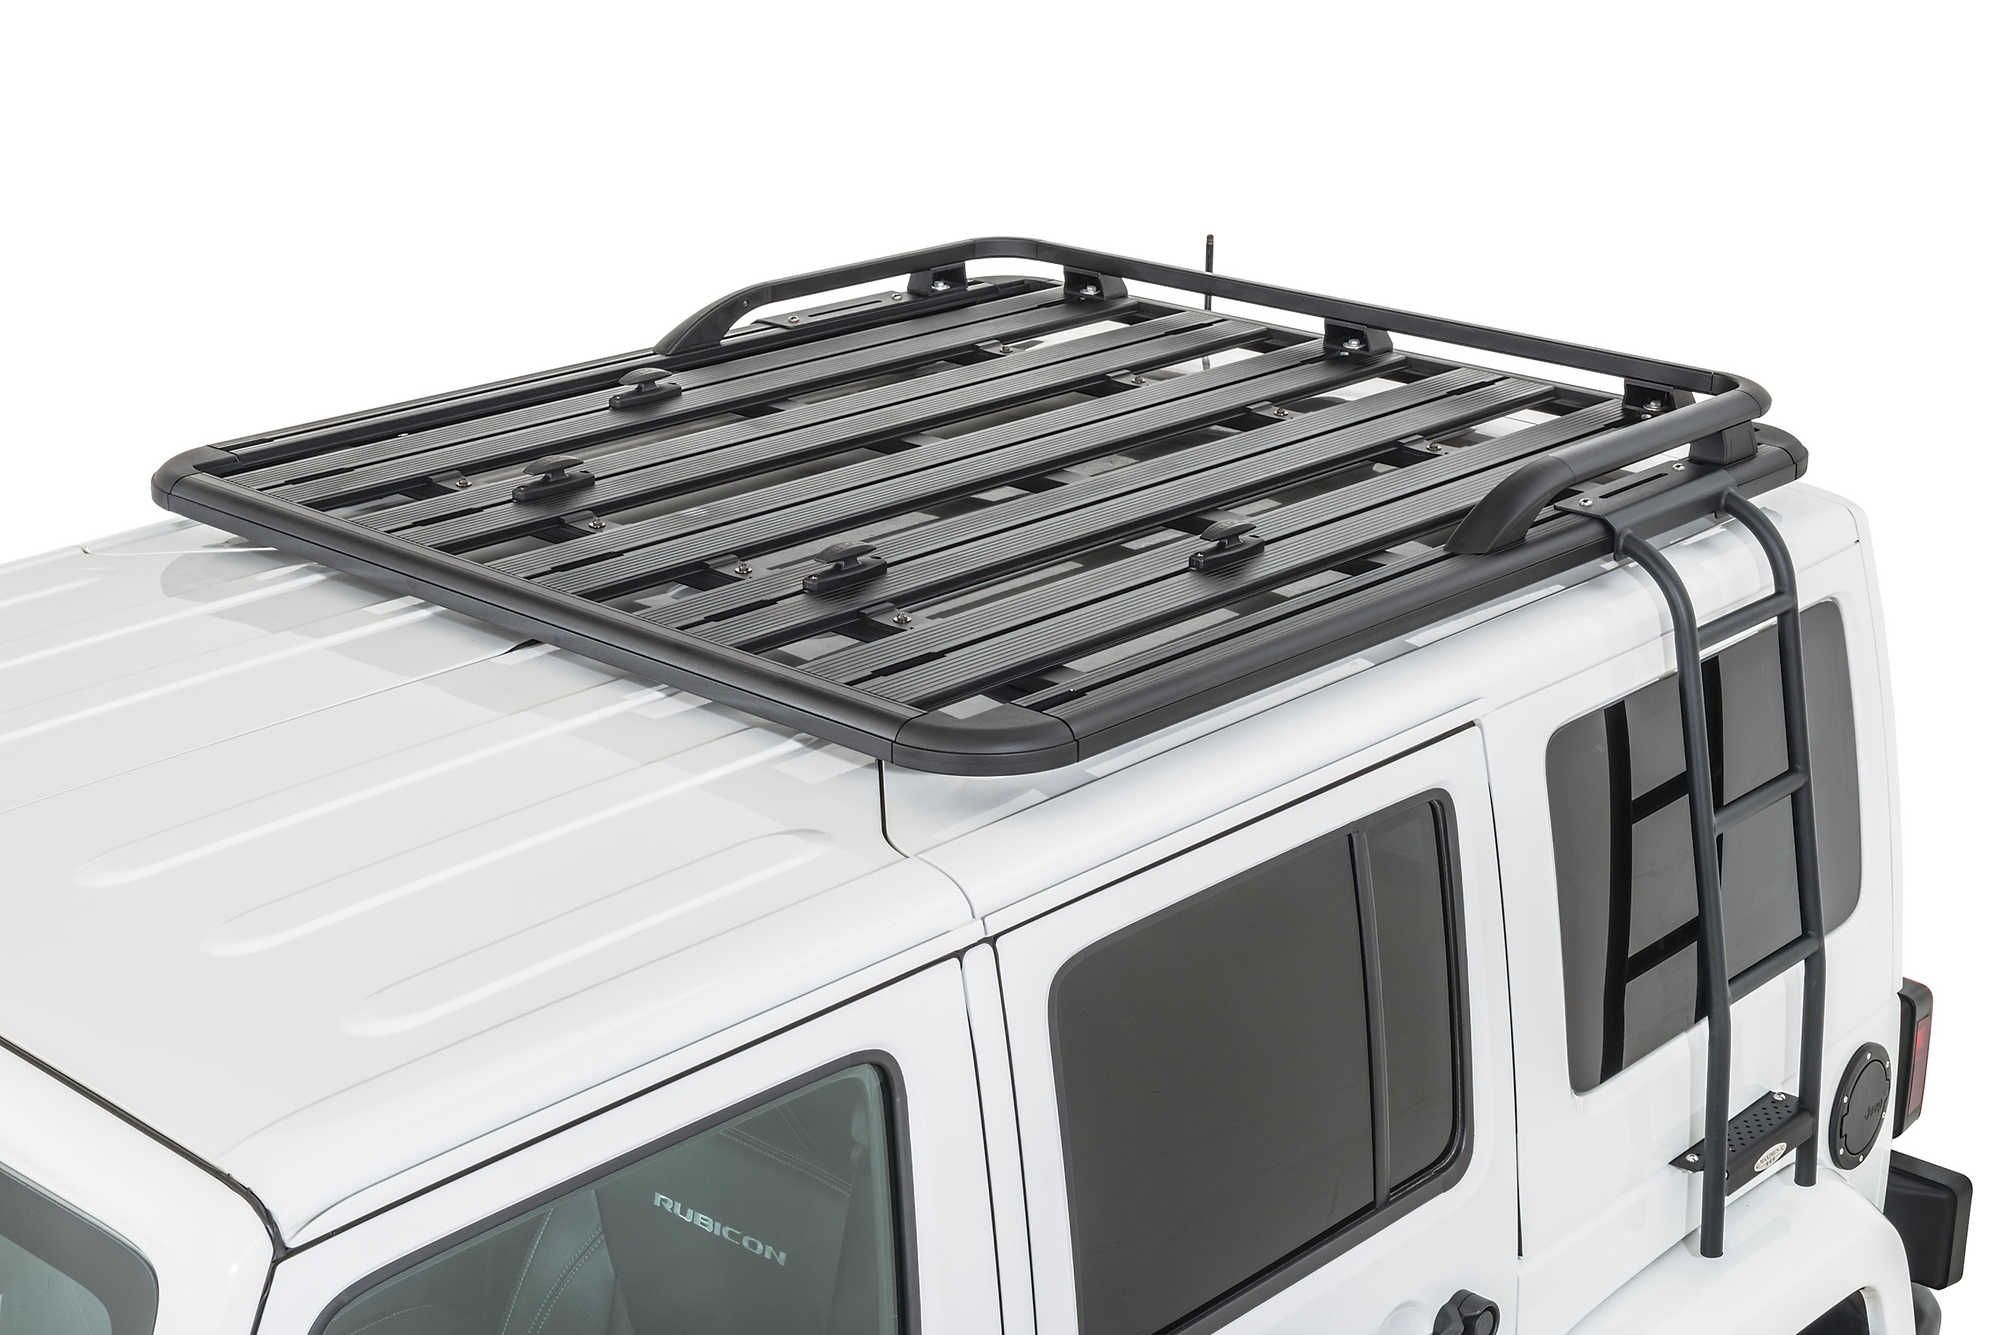 The Maximus 3 Pioneer Roof Rack Is The Ultimate Accessory To